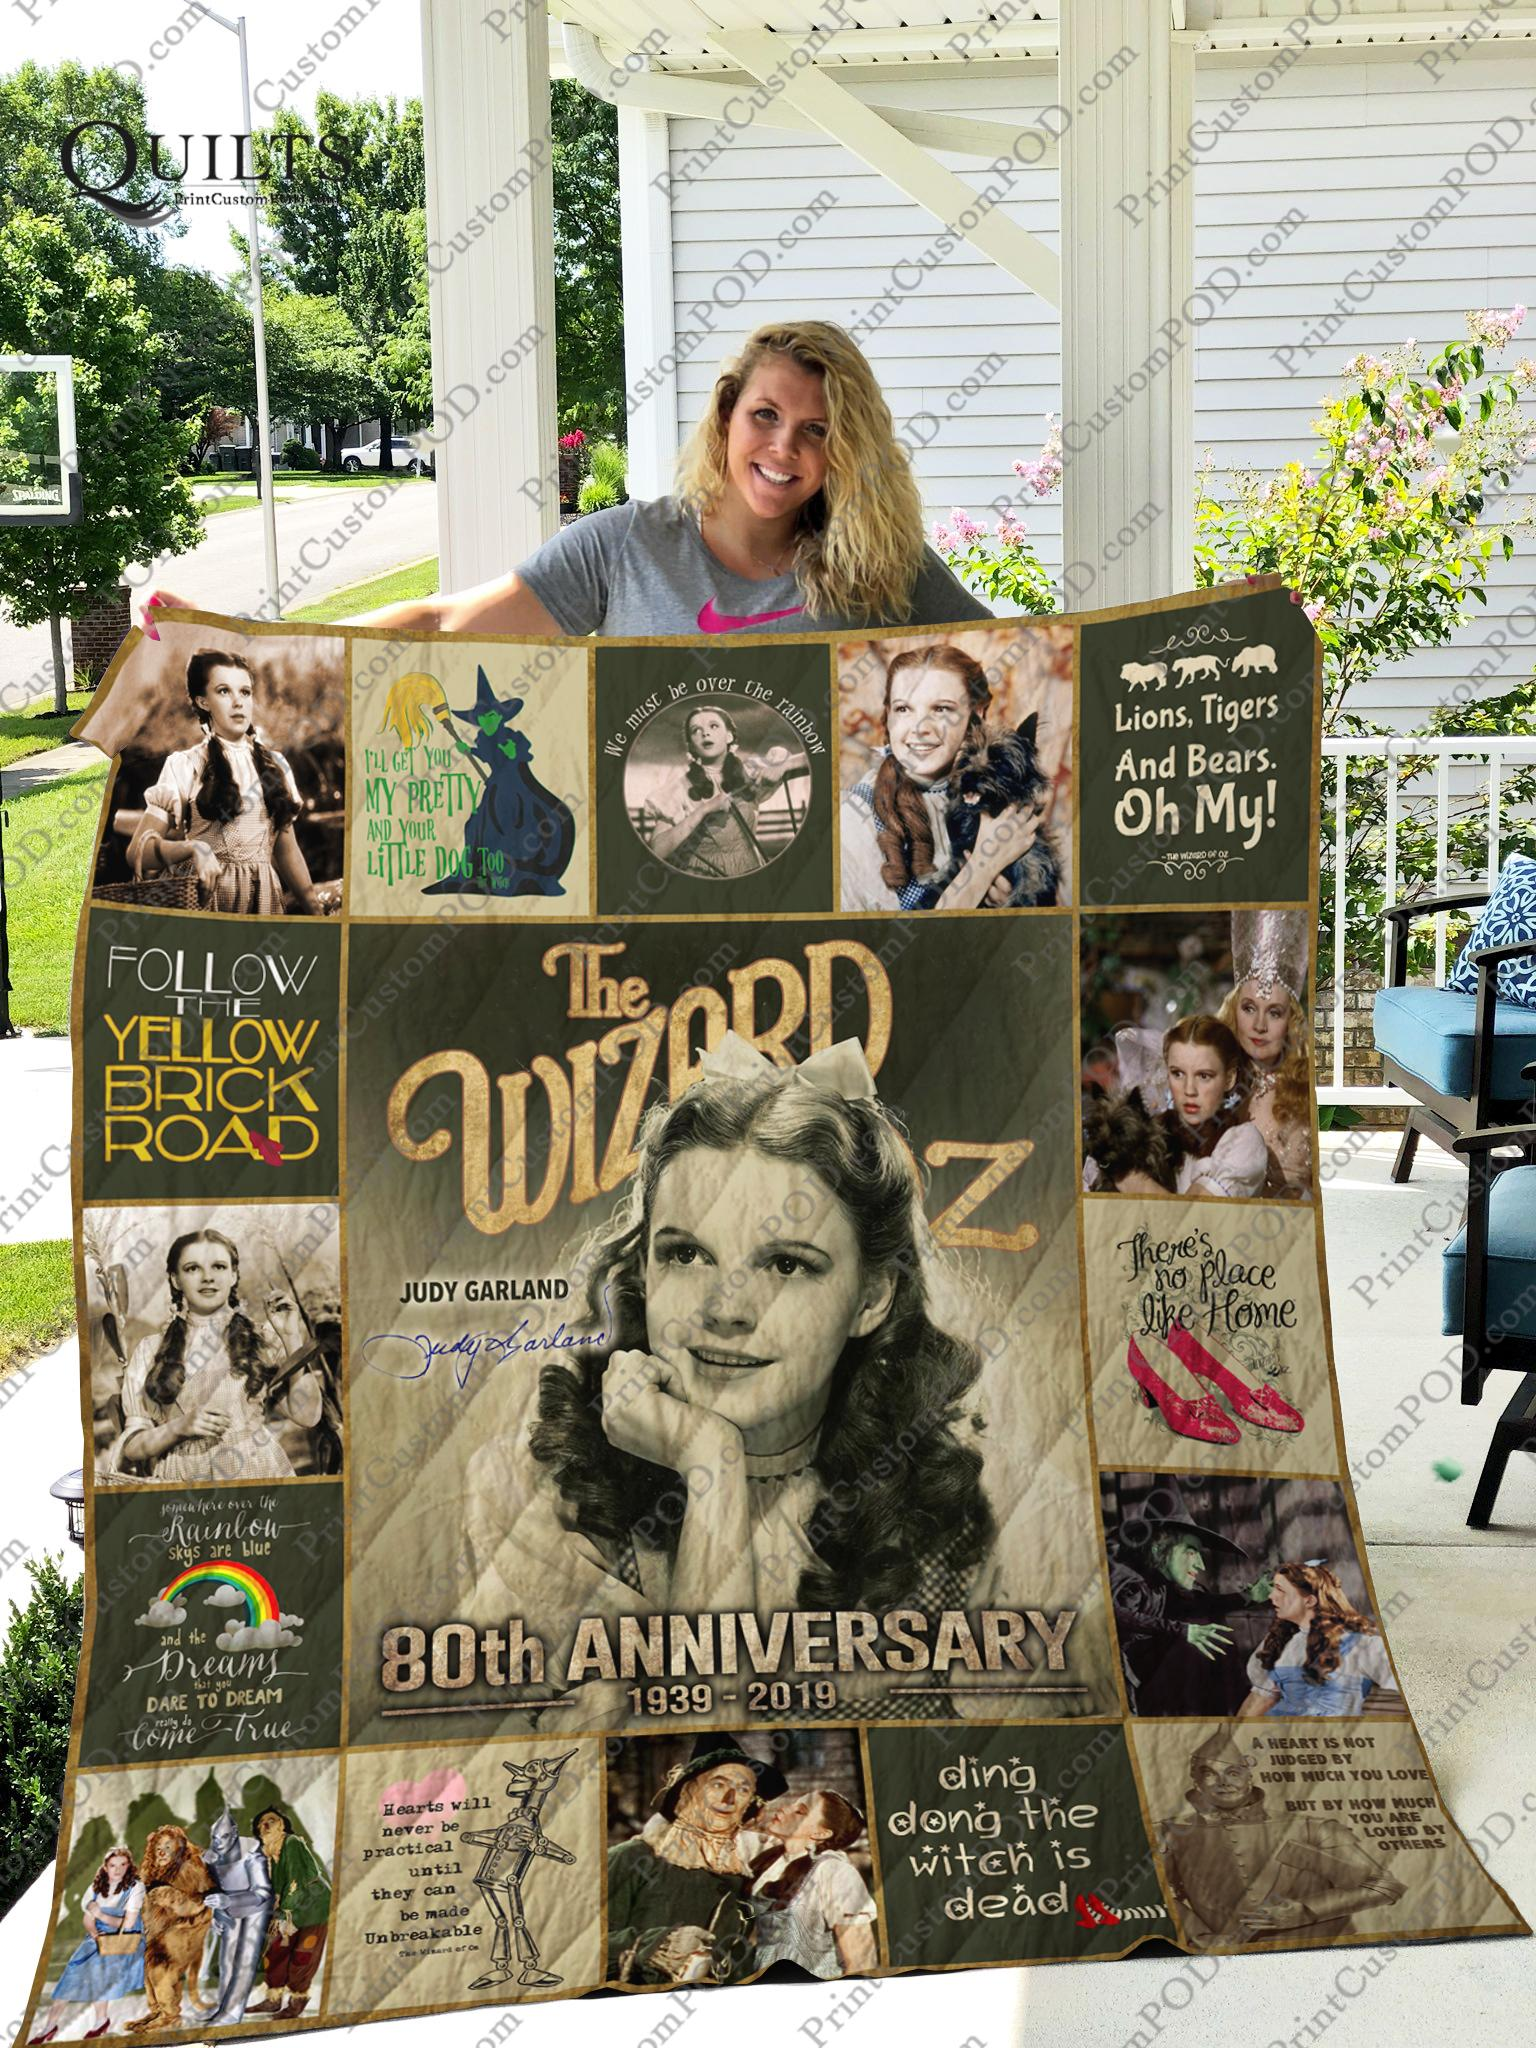 The wizard of oz judy garland 80th anniversary quilt - twin